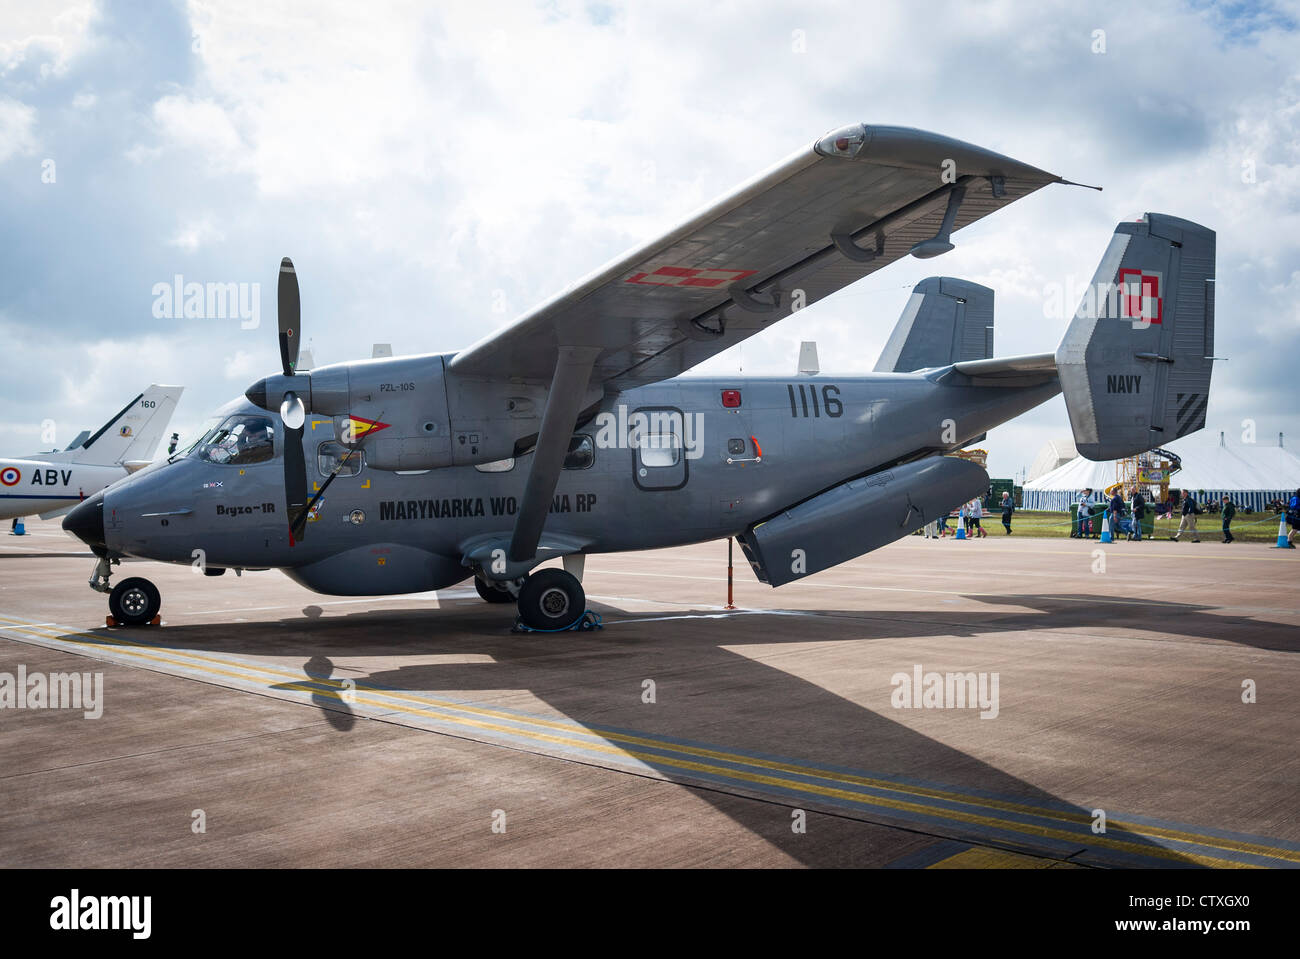 Antonov An-28 aircraft on static display at RAF Fairford side view - Stock Image